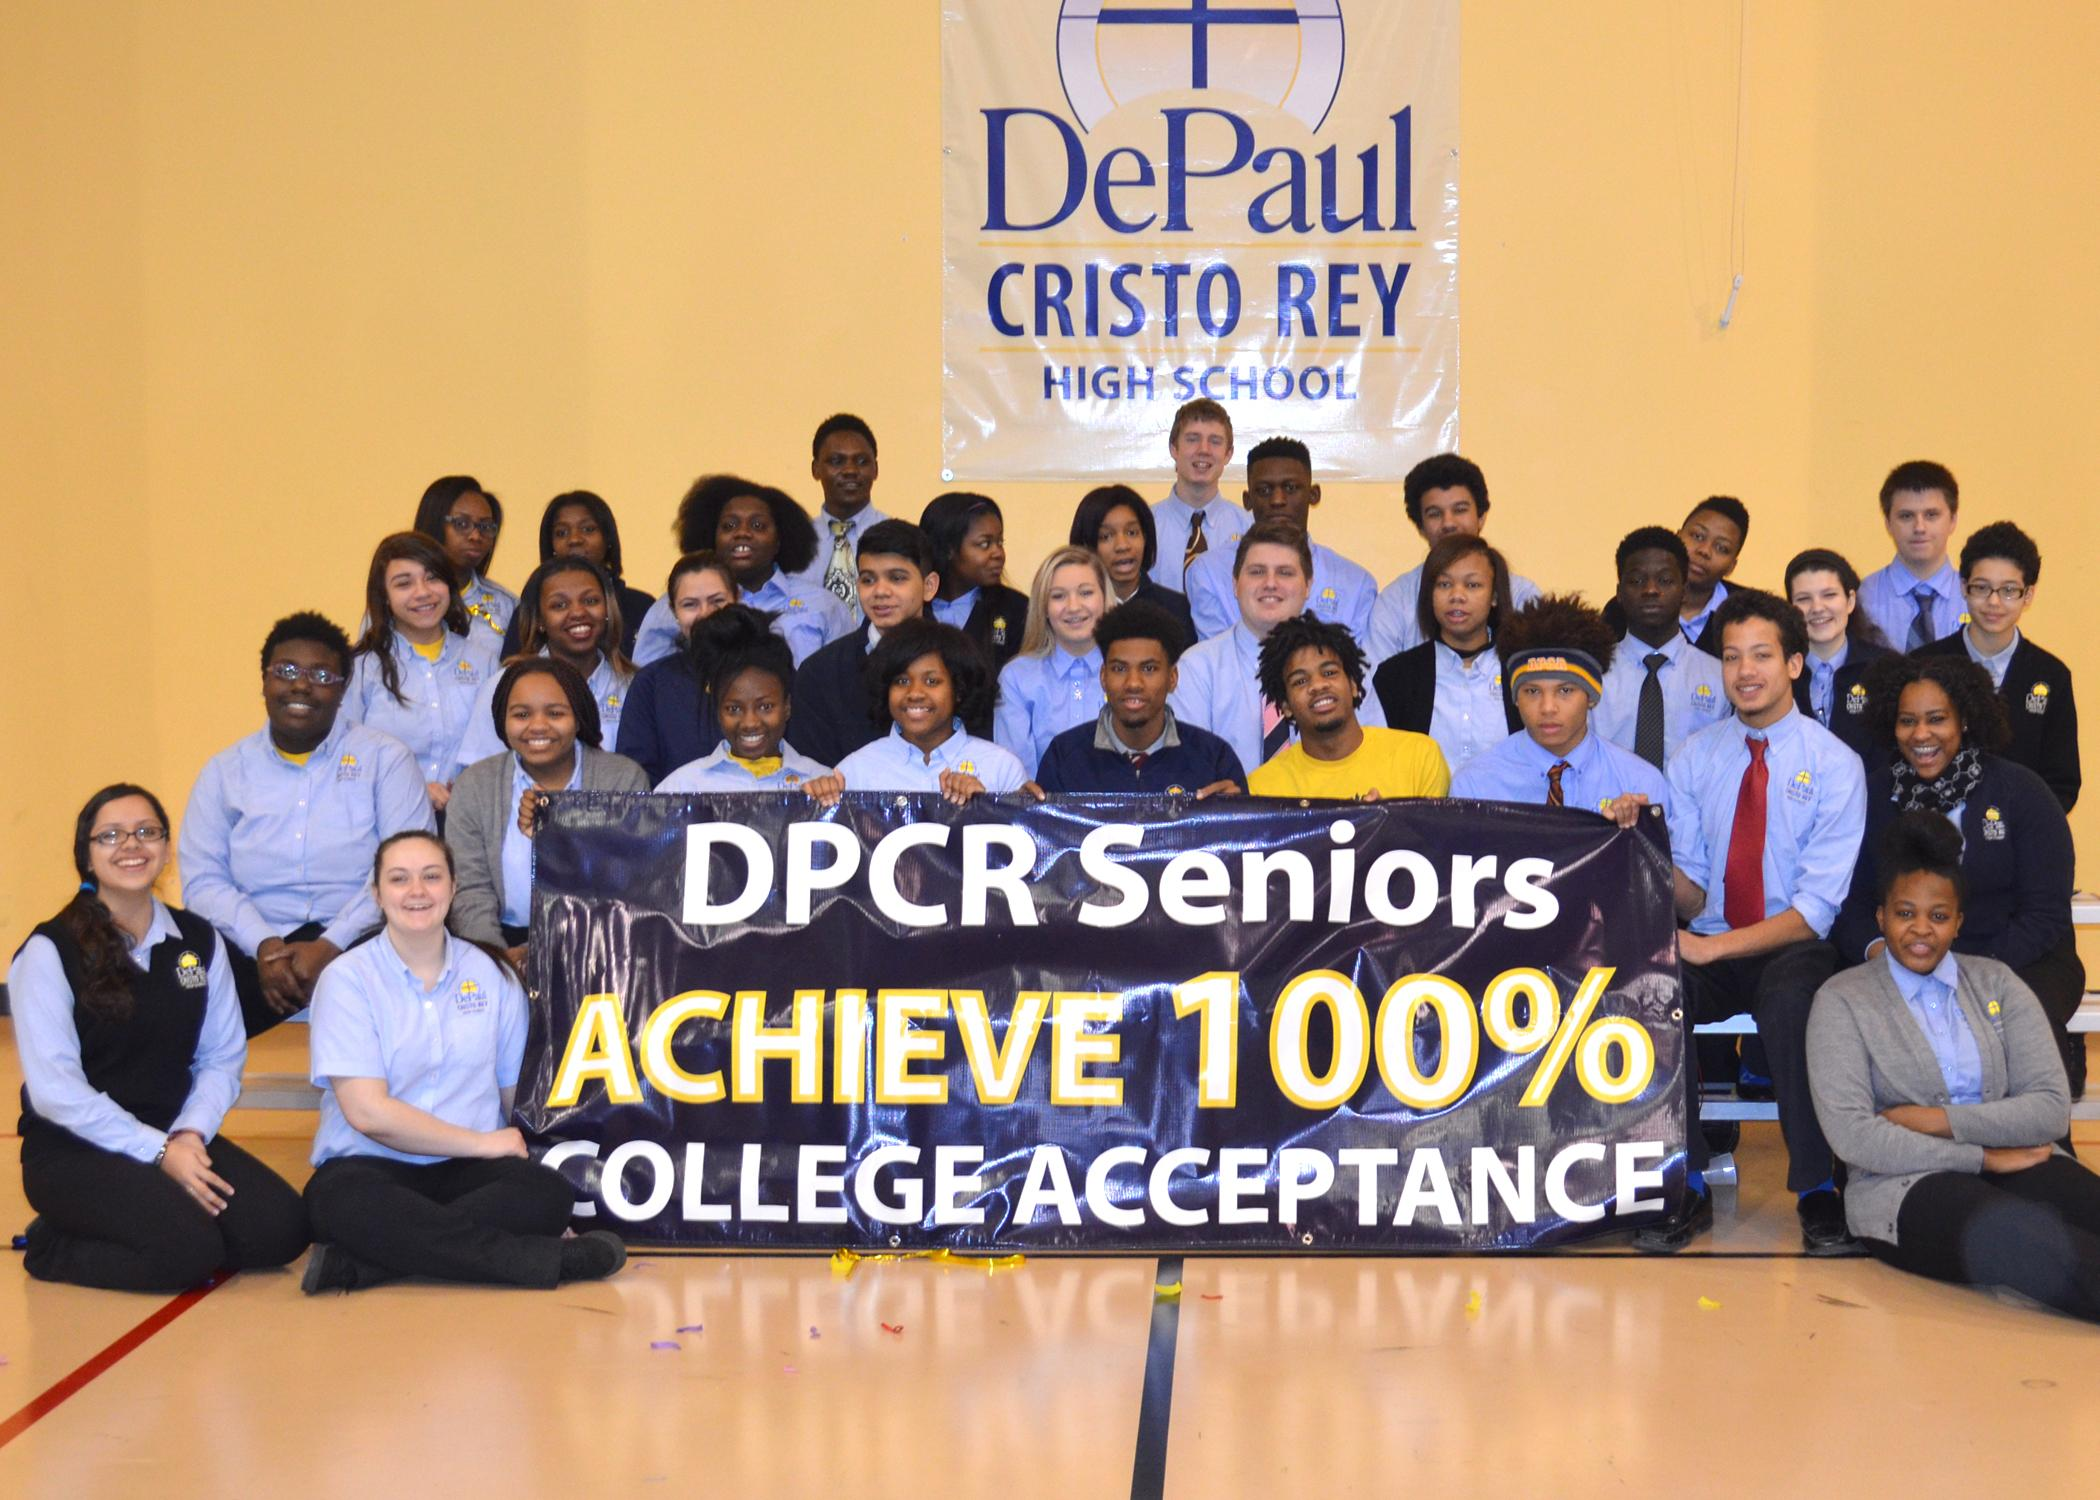 depaul cristo rey s seniors all accepted to colleges wkrc depaul cristo rey s seniors all accepted to college depaul cristo